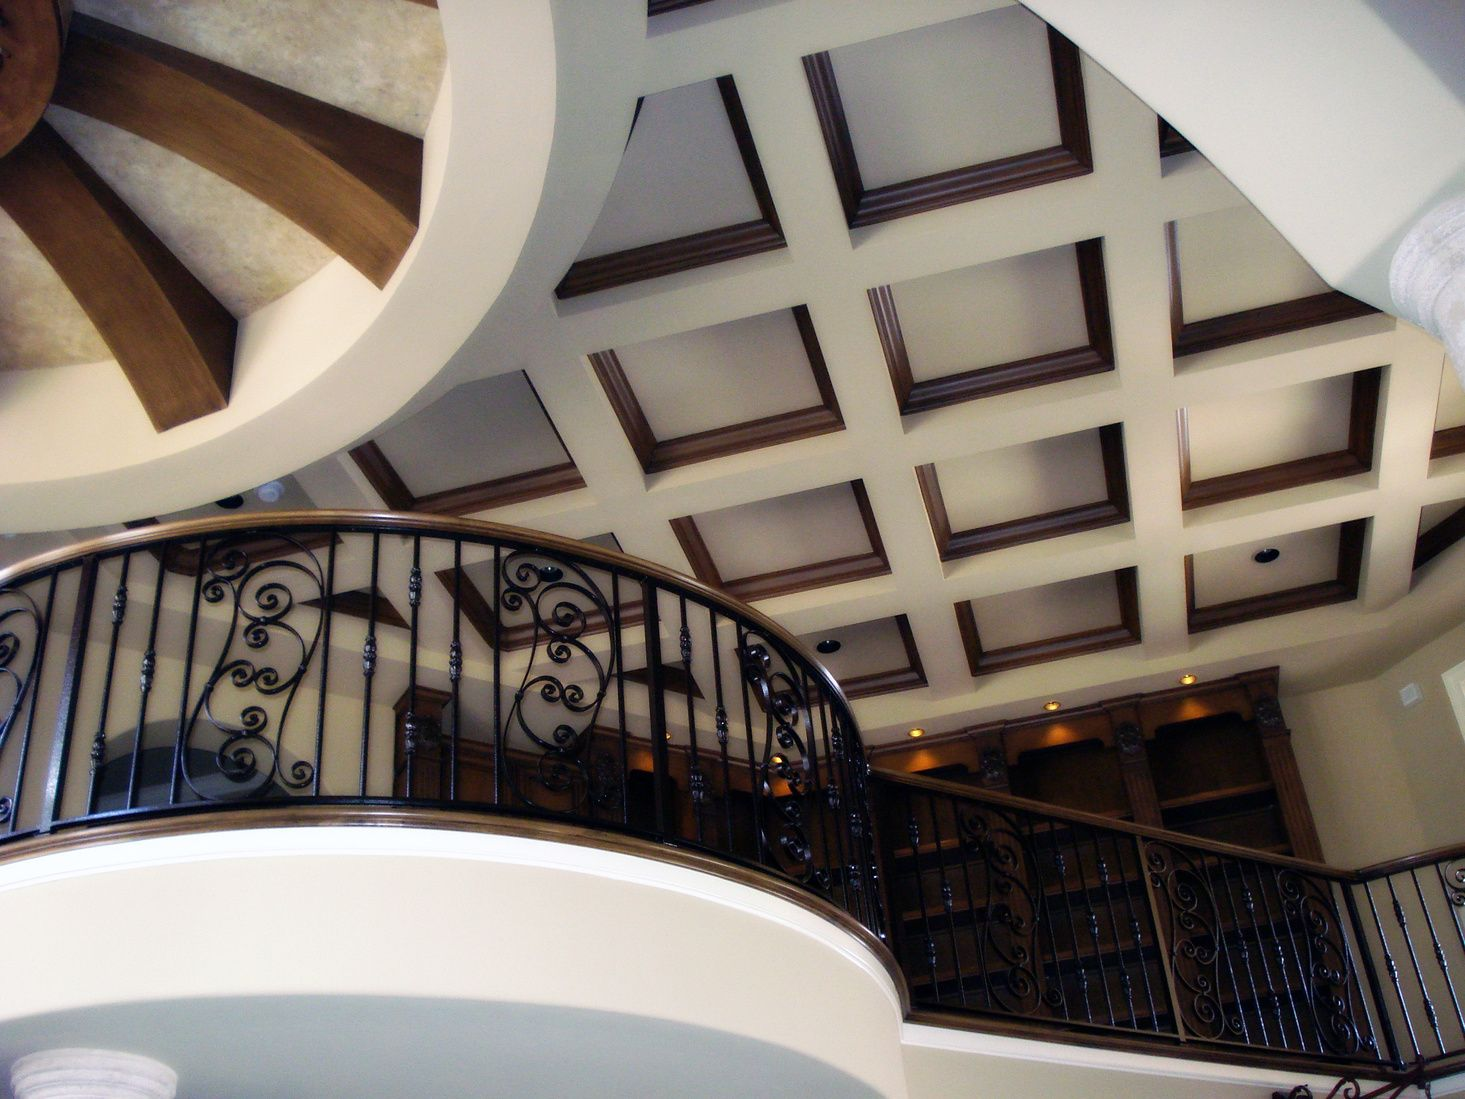 Breathtaking views and custom details are endless in this beautiful custom luxury home built by Norm Bloxham of Luxury Home Solutions in Fort Myers River District on the Caloosahatchee River. With custom faux painting custom staircase ceiling elevator outdoor living room covered gazebo hurricane rated windows and doors and amazing detail throughout. This 5 bedrooms 5 bath luxury Mediterranean inspired Fort Myers riverfront residence is welcoming and awe-inspiring. Check out the complete…